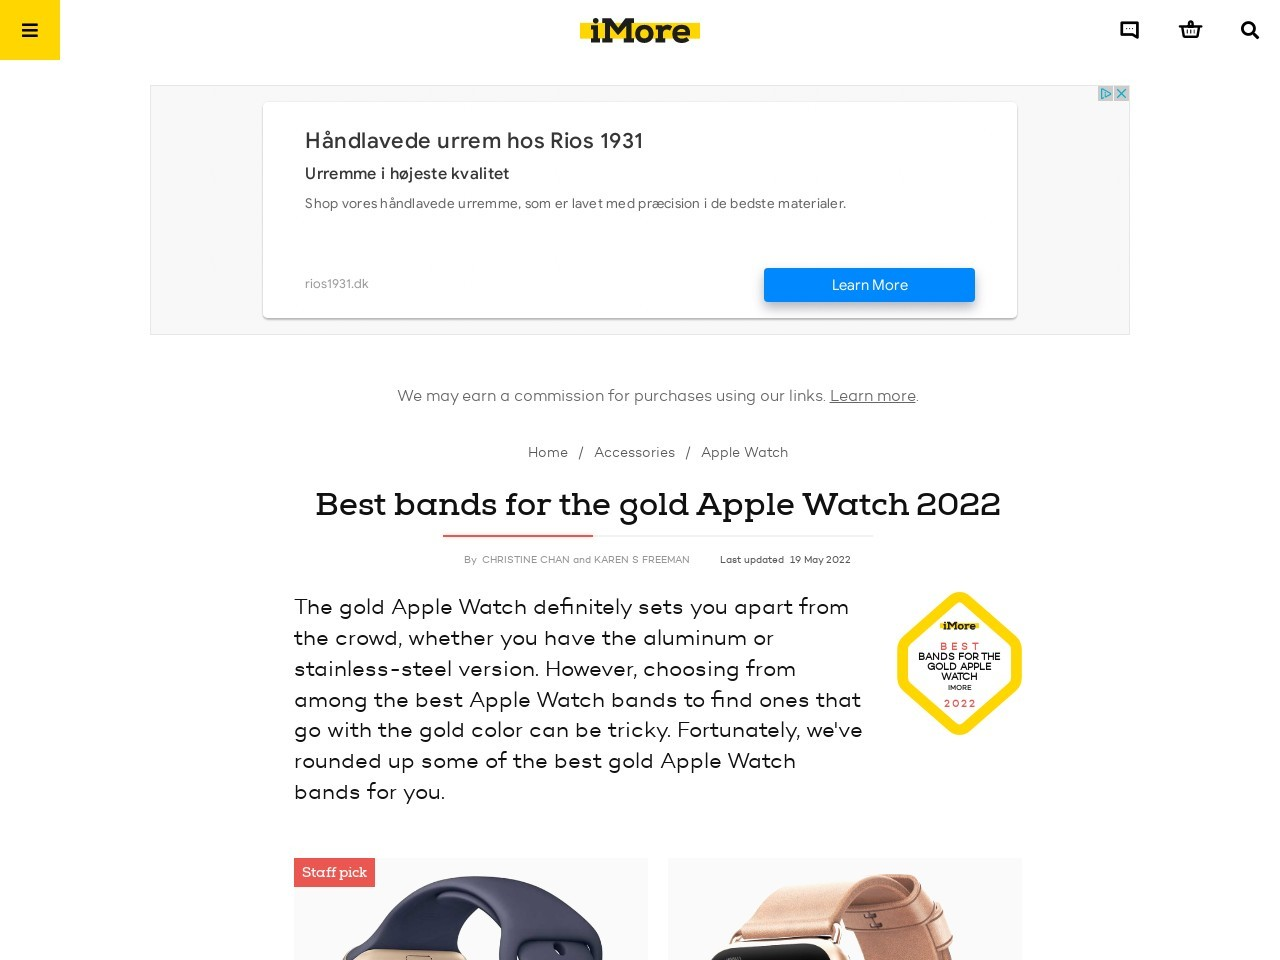 Best Bands for the Gold Apple Watch in 2019